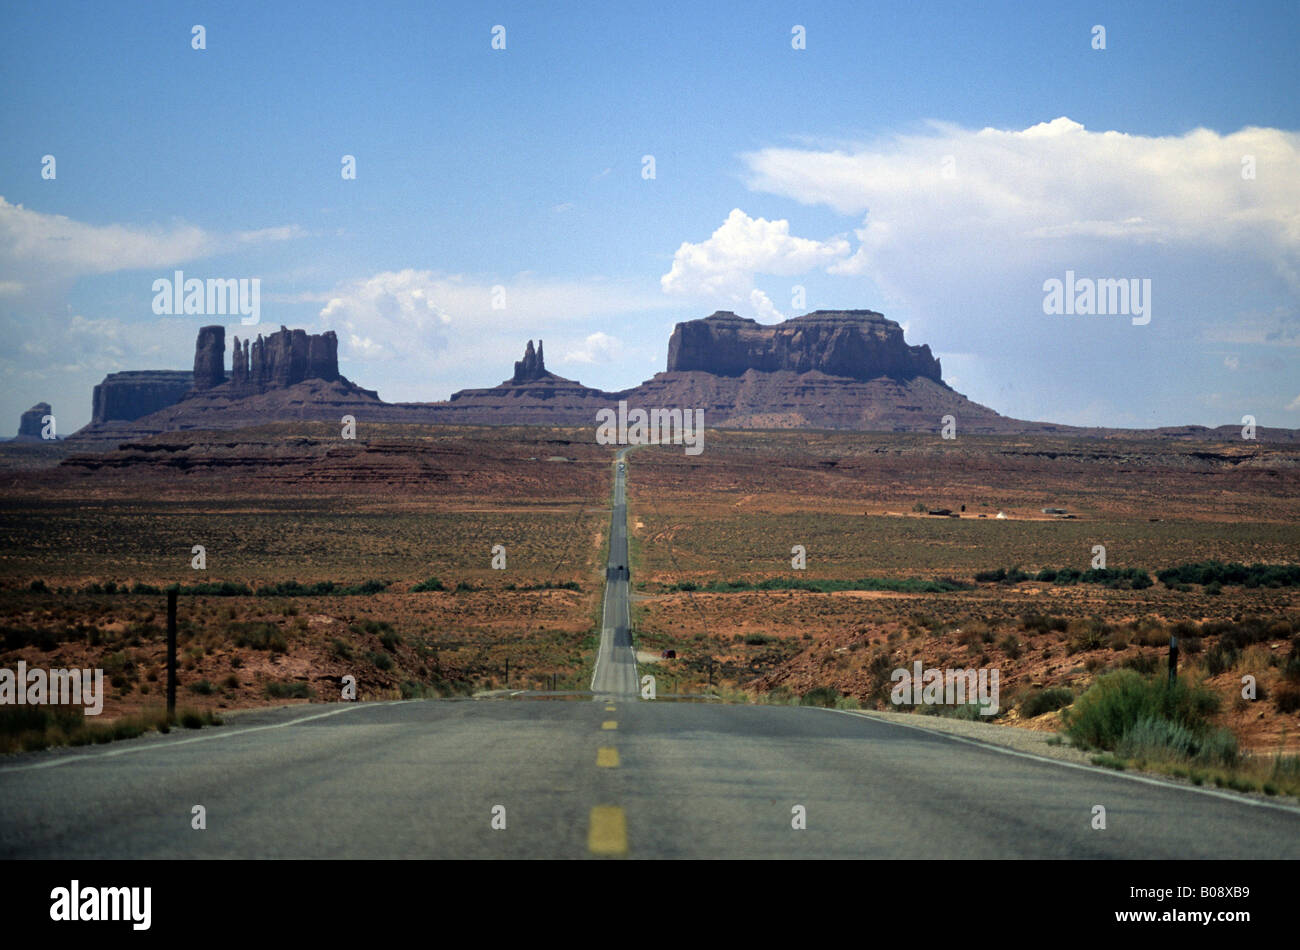 Highway going through Monument Valley, Southwest USA - Stock Image